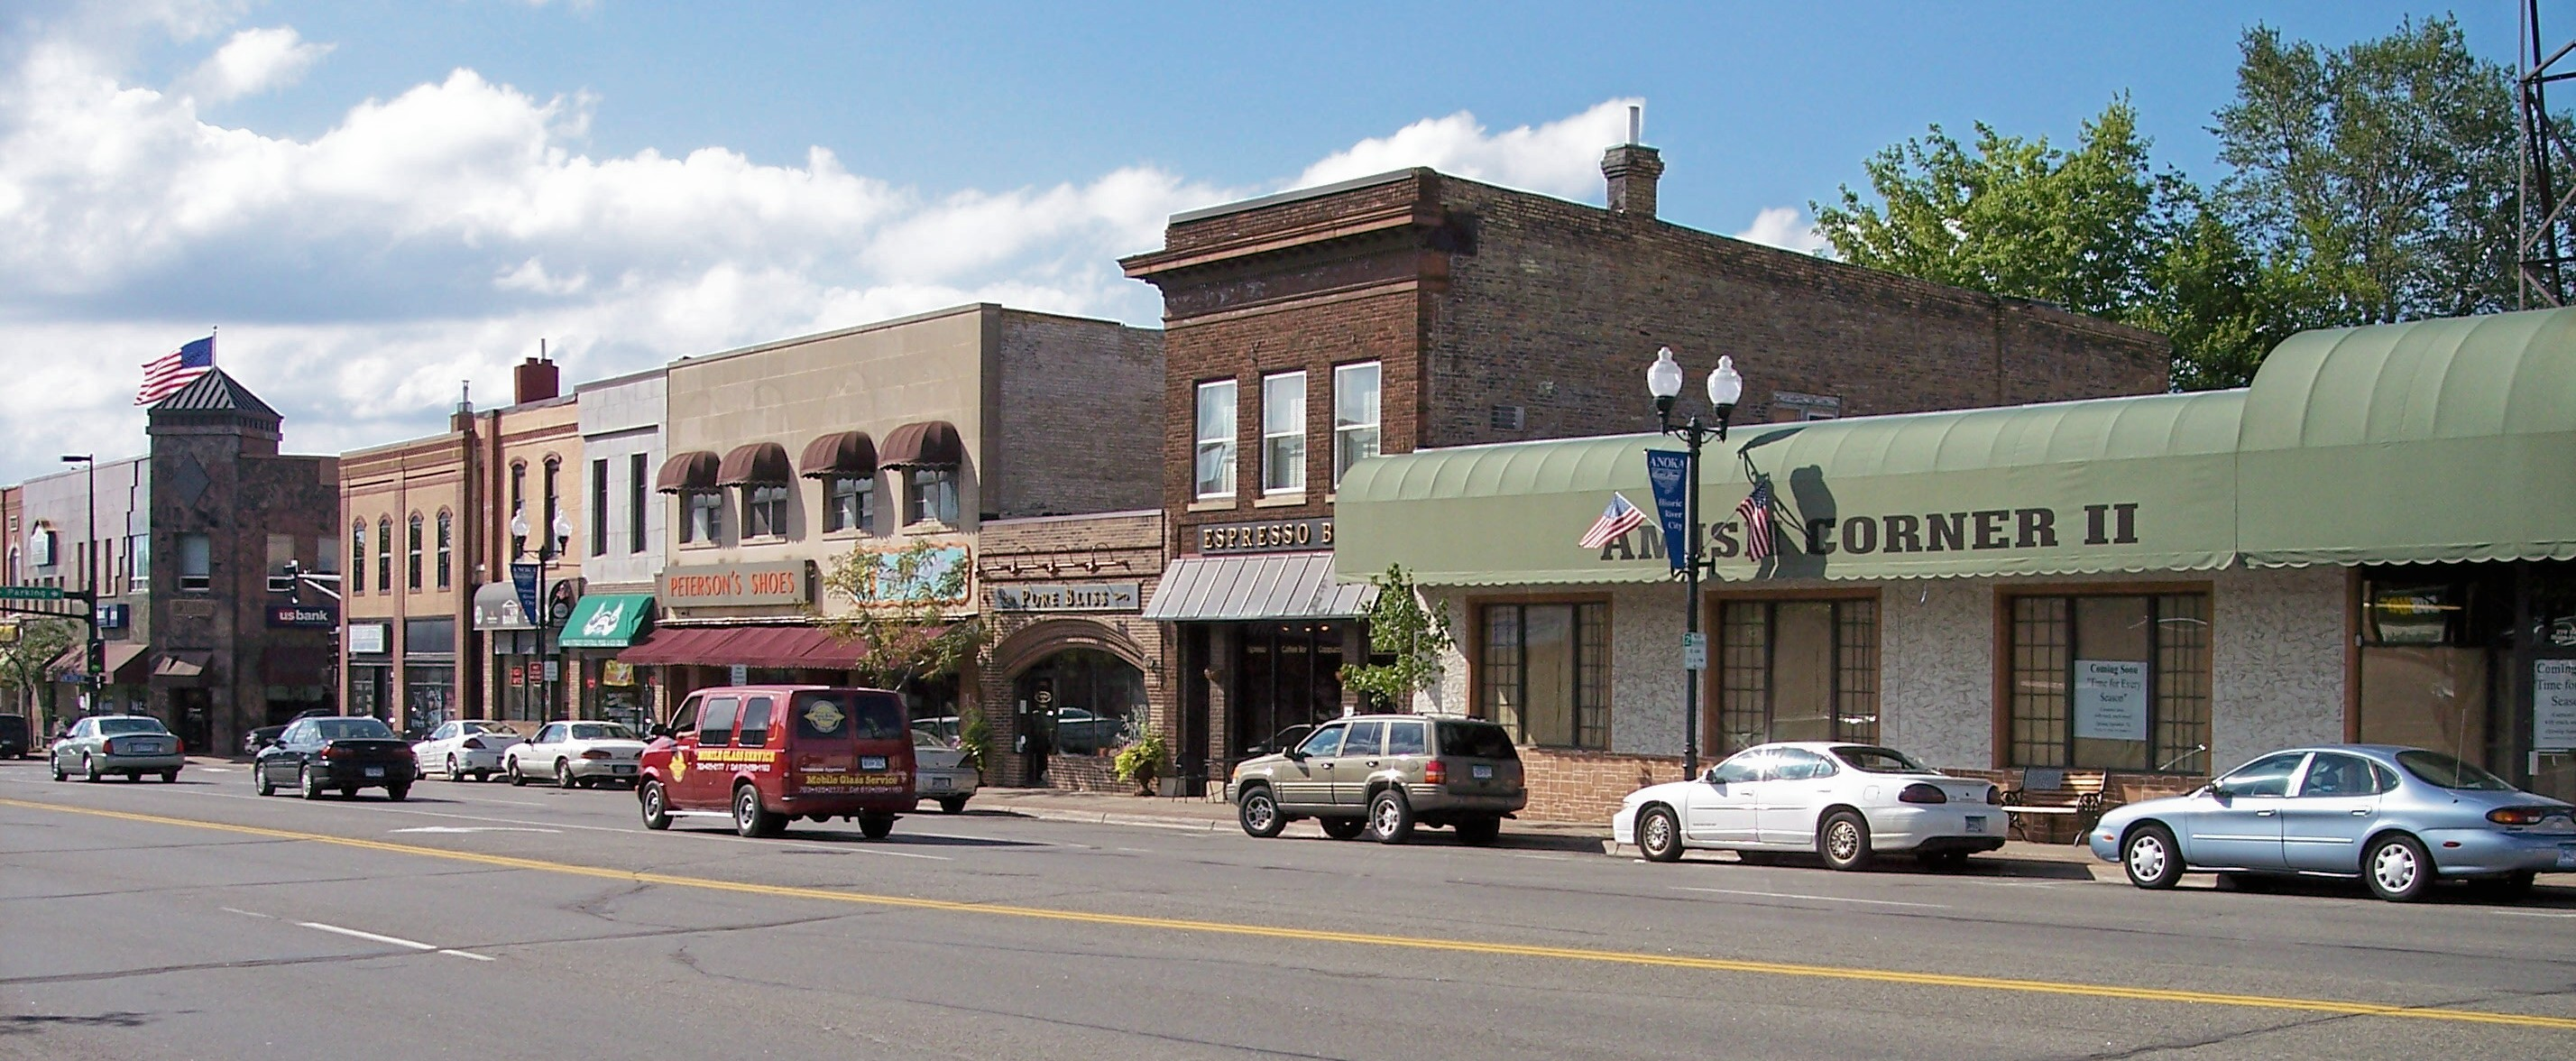 Commercial Property For Sale Marshalltown Iowa